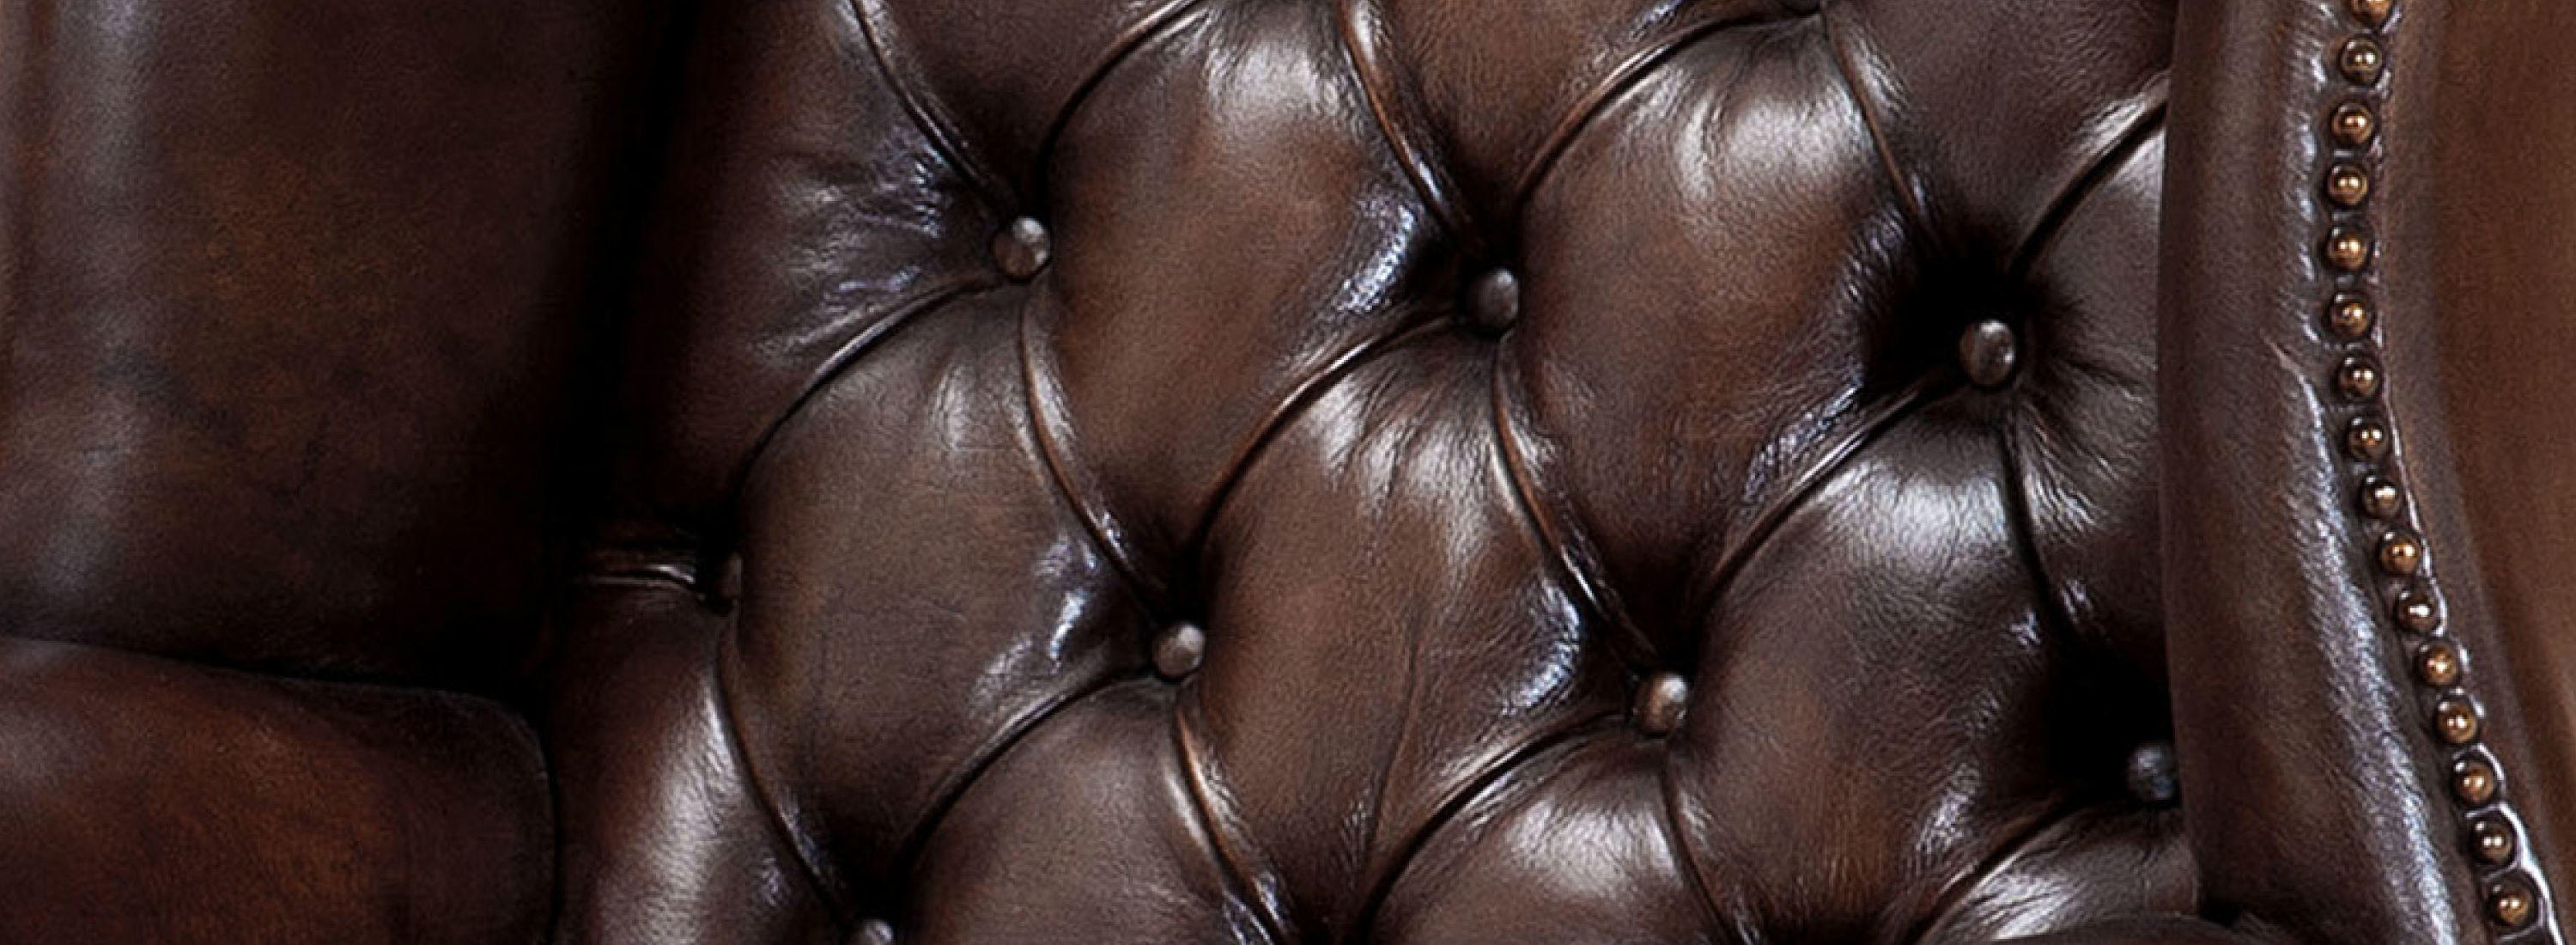 Leather upholstery detail